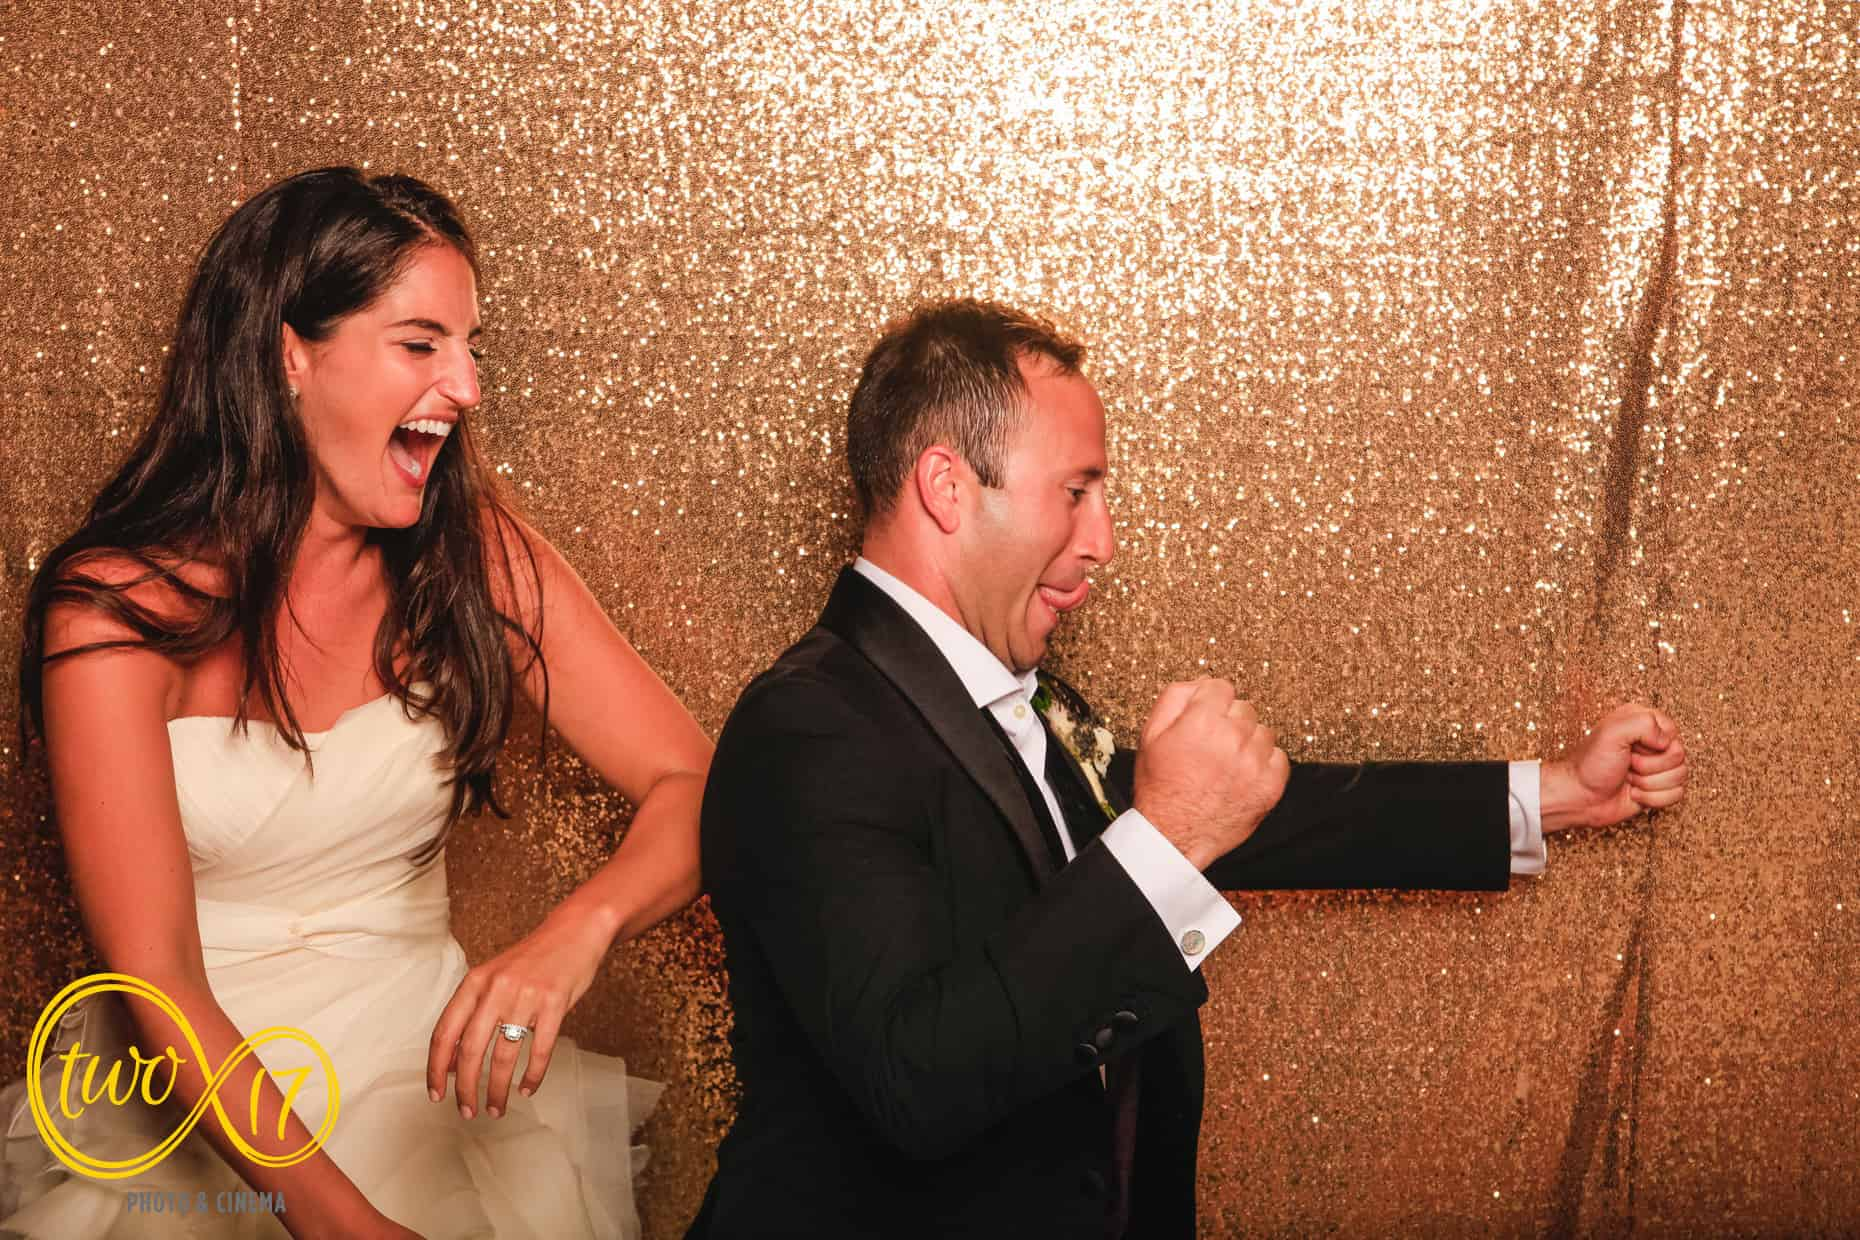 Willow Creek Winery wedding photo booth